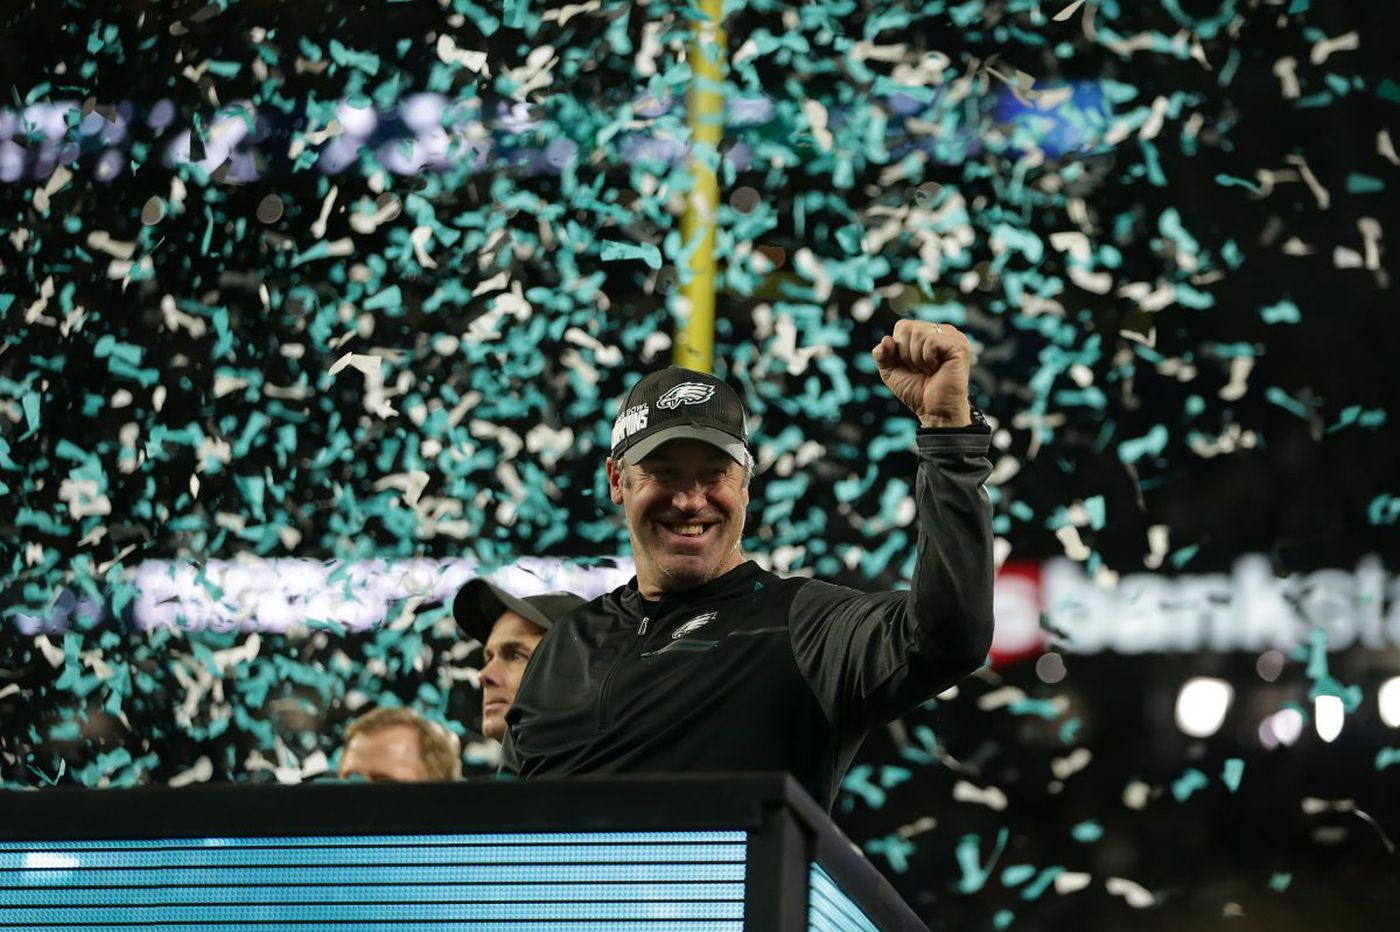 Doug Pederson's contract extended through 2020 as Eagles pick up fifth-year option